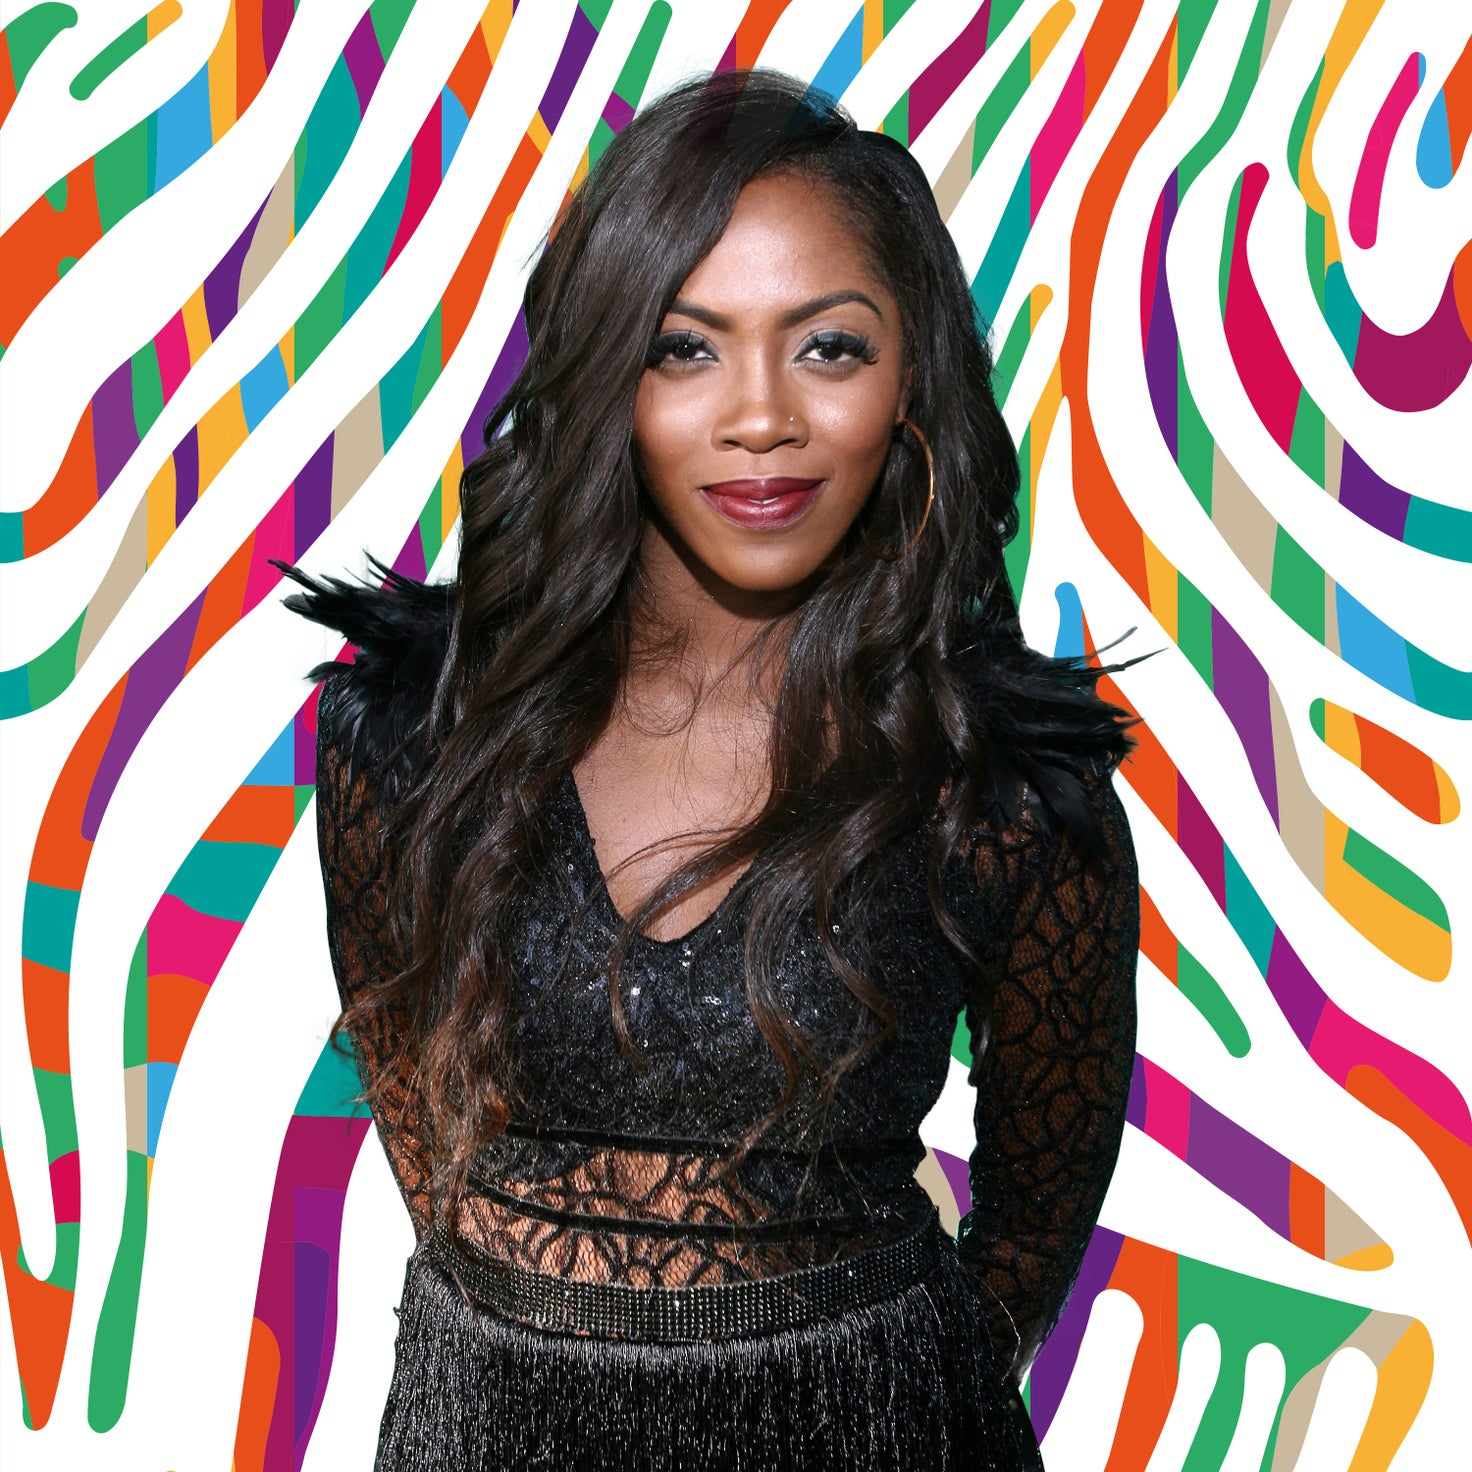 7 Things To Know About Tiwa Savage